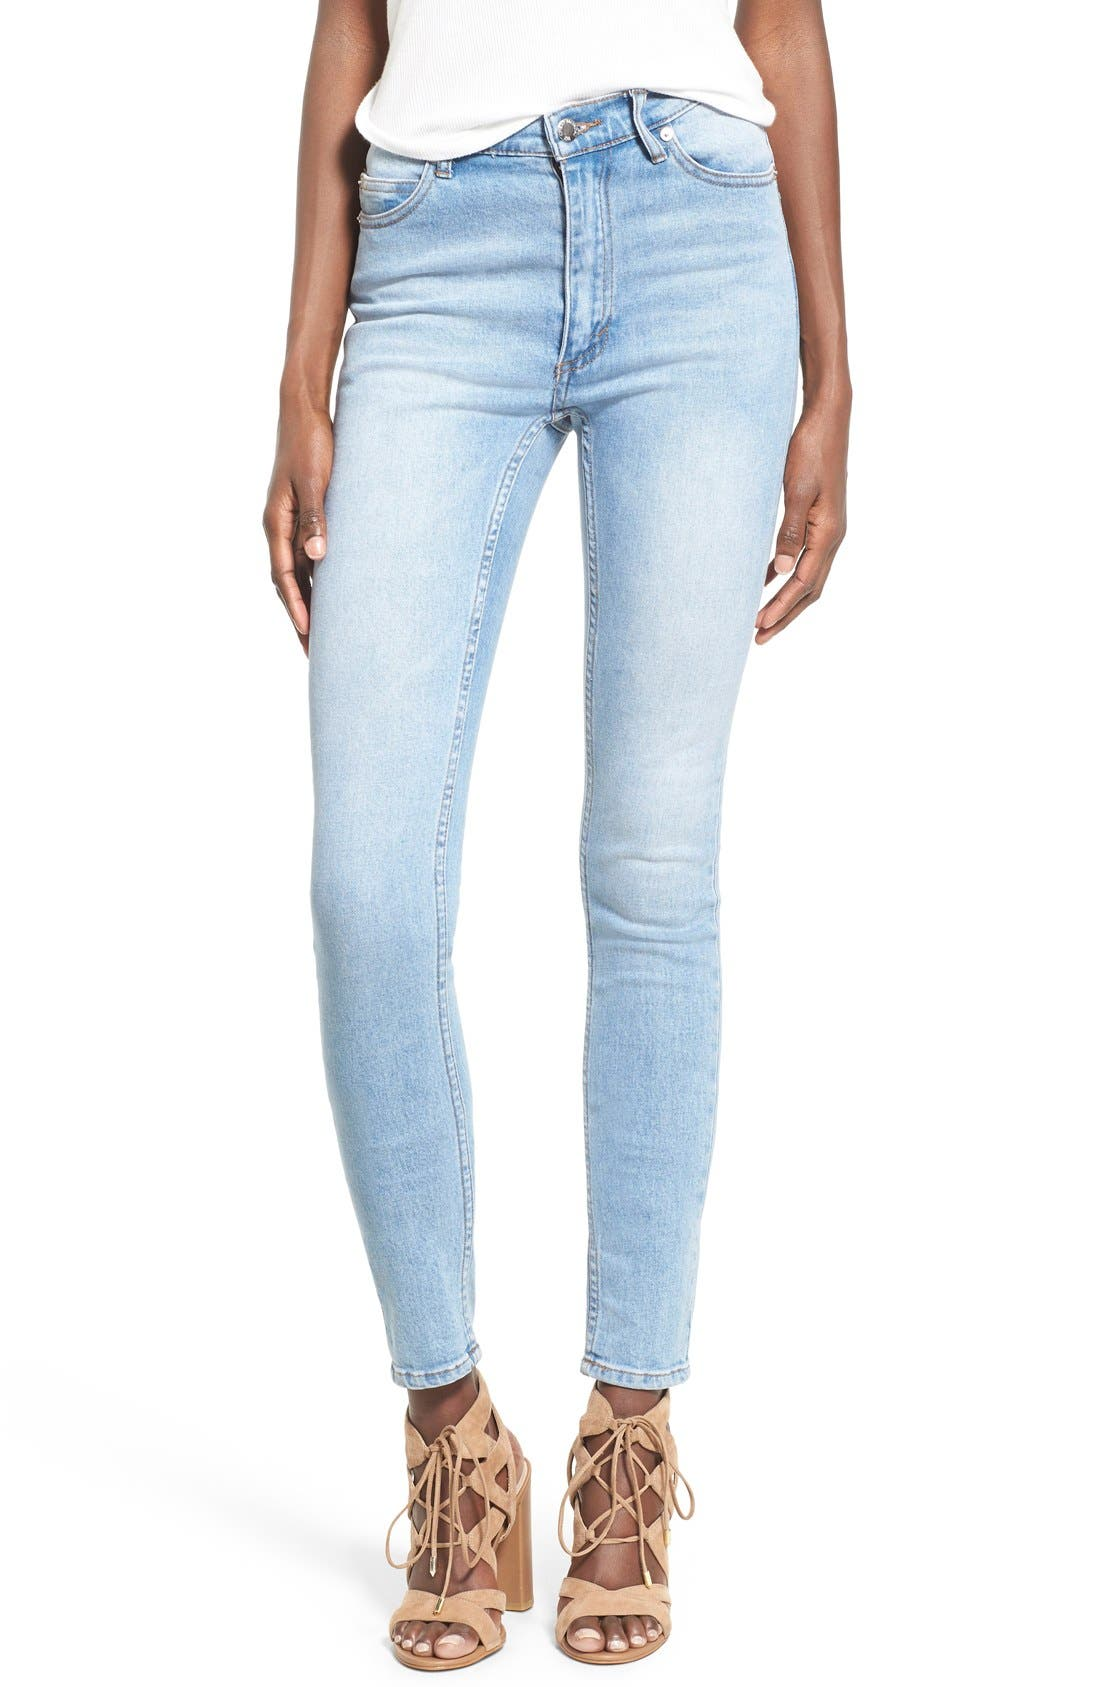 Main Image - Cheap Monday 'Second Skin' Skinny Jeans (Stonewash Blue)